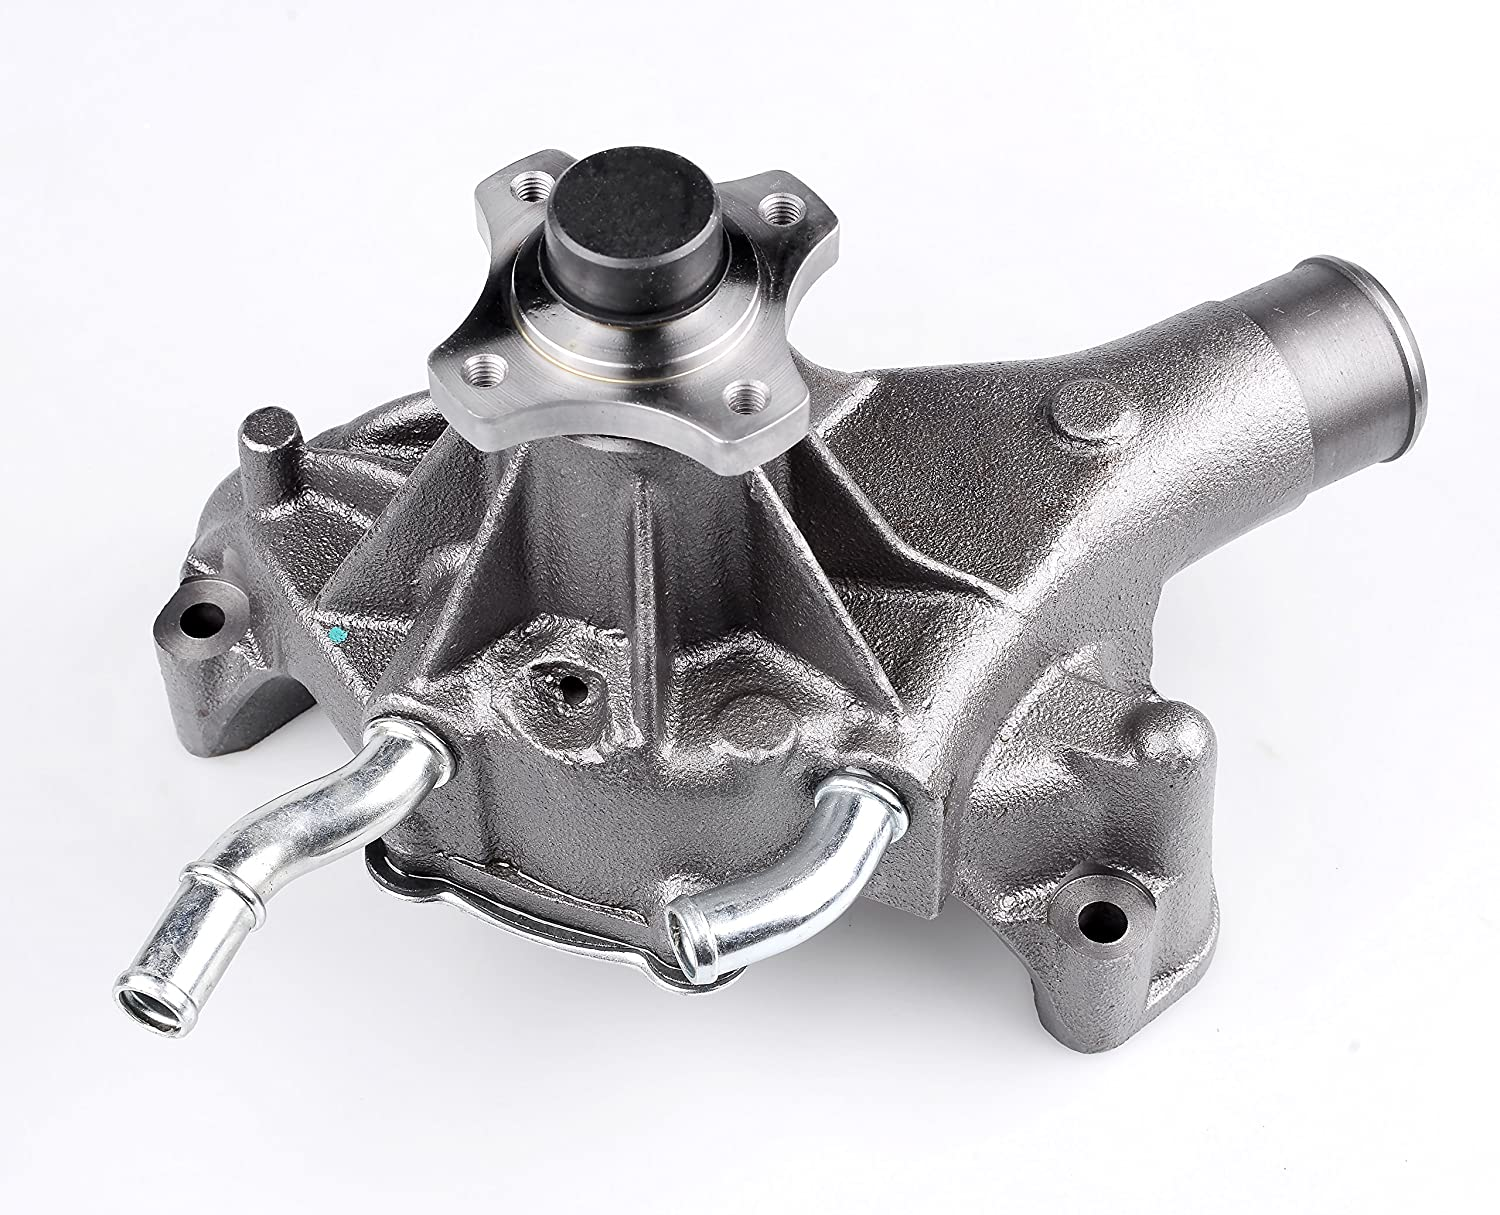 Mechapro 252-711 Professional Water Pump with Gasket for GM Trucks 4.3L 5.0L 5.7L Engine